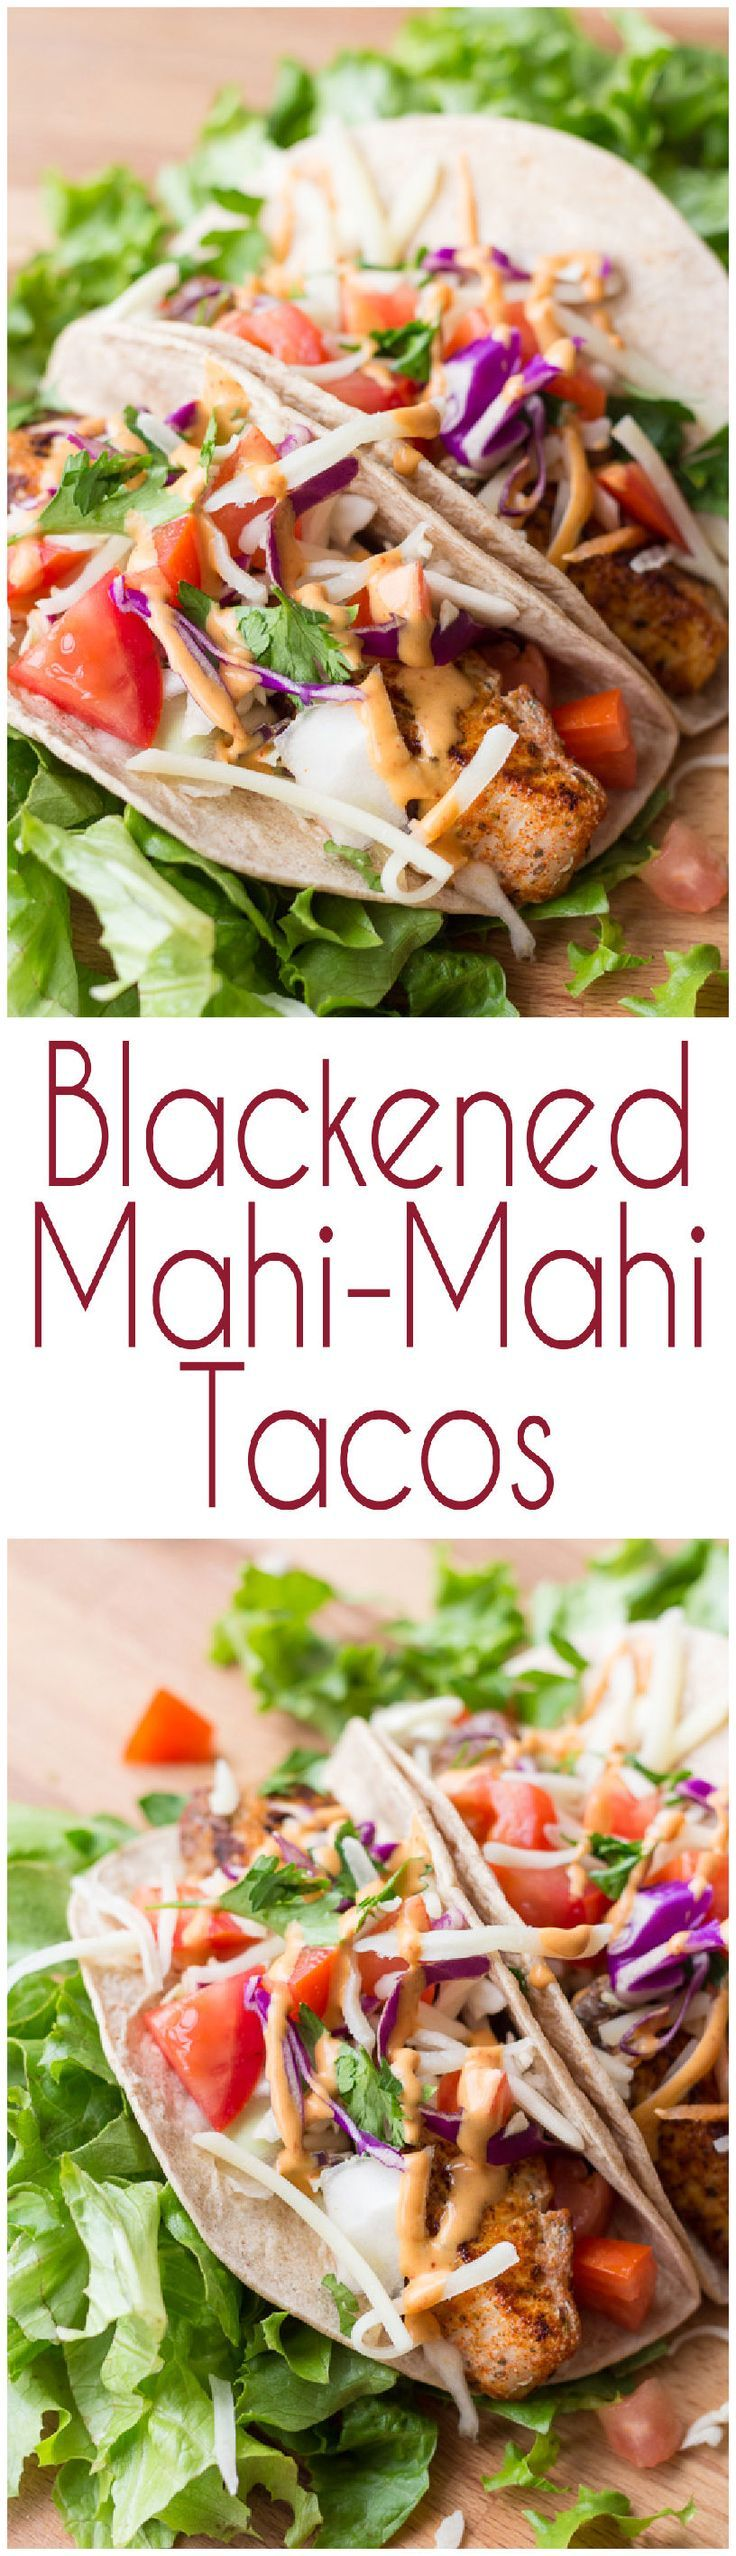 Blackened Mahi-Mahi Tacos with a Chipotle Mayo